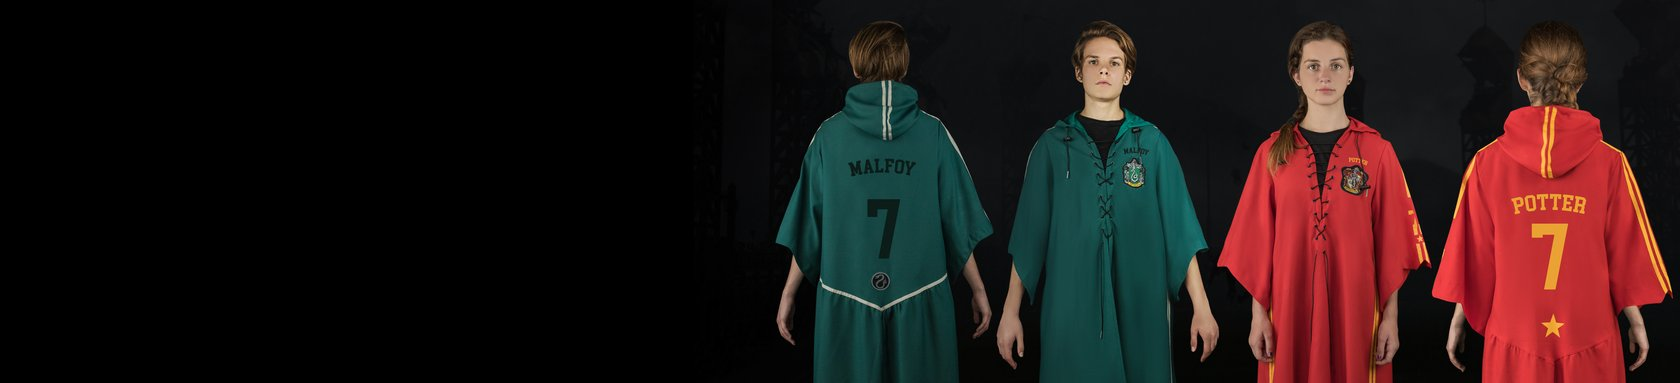 Harry Potter Quidditch robe